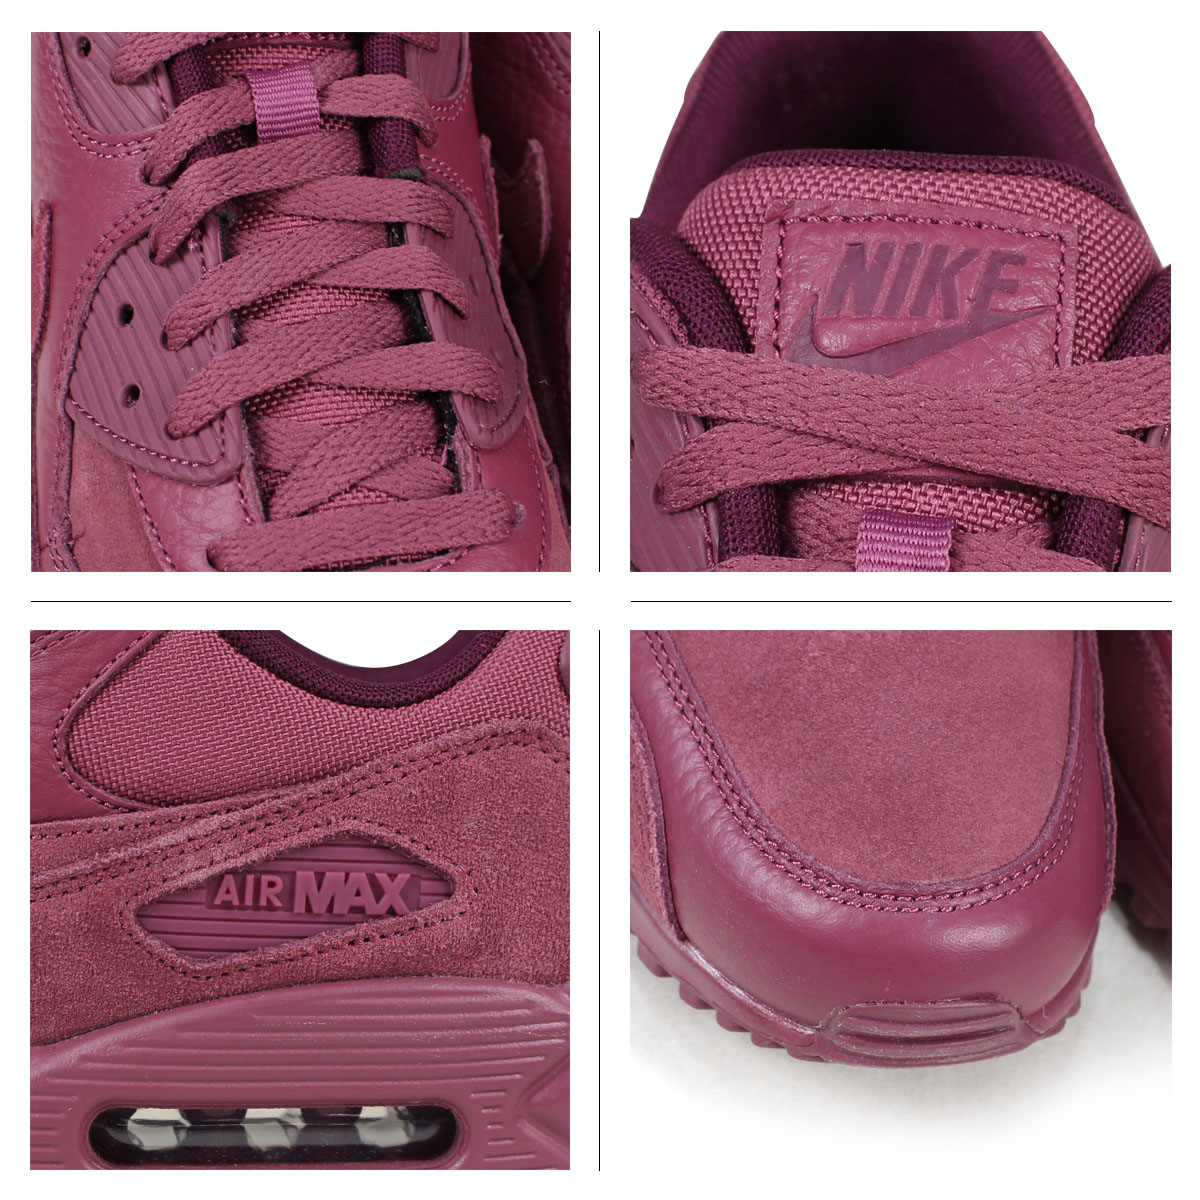 big sale 2031d 843c8 ... NIKE AIR MAX 90 PREMIUM Kie Ney AMAX 90 sneakers men 700,155-601 red